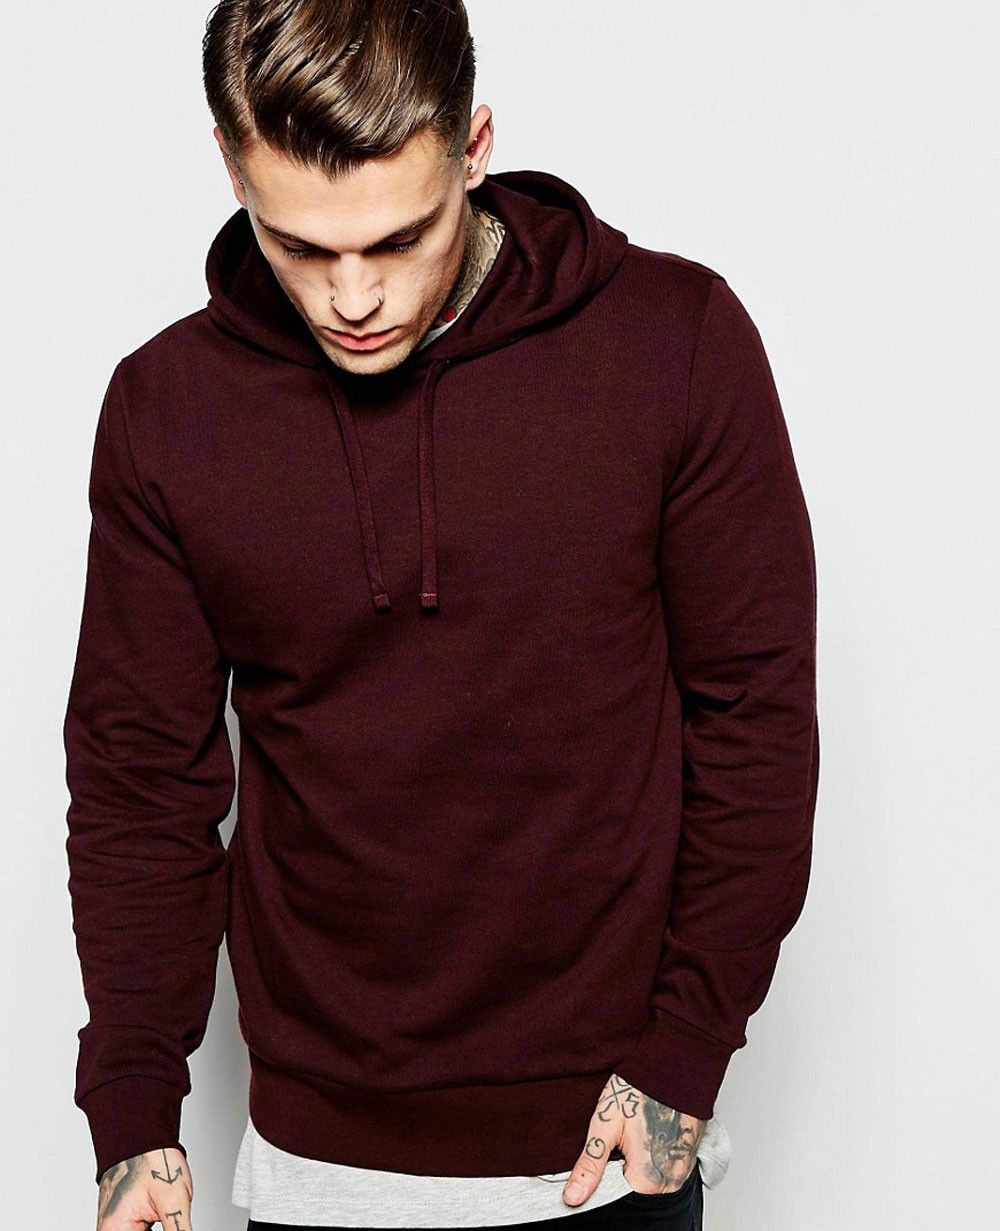 3e9fd96a92f6 Pin by Quick Apparels on Hoodies in 2019 | Hoodies, Men, Burgundy